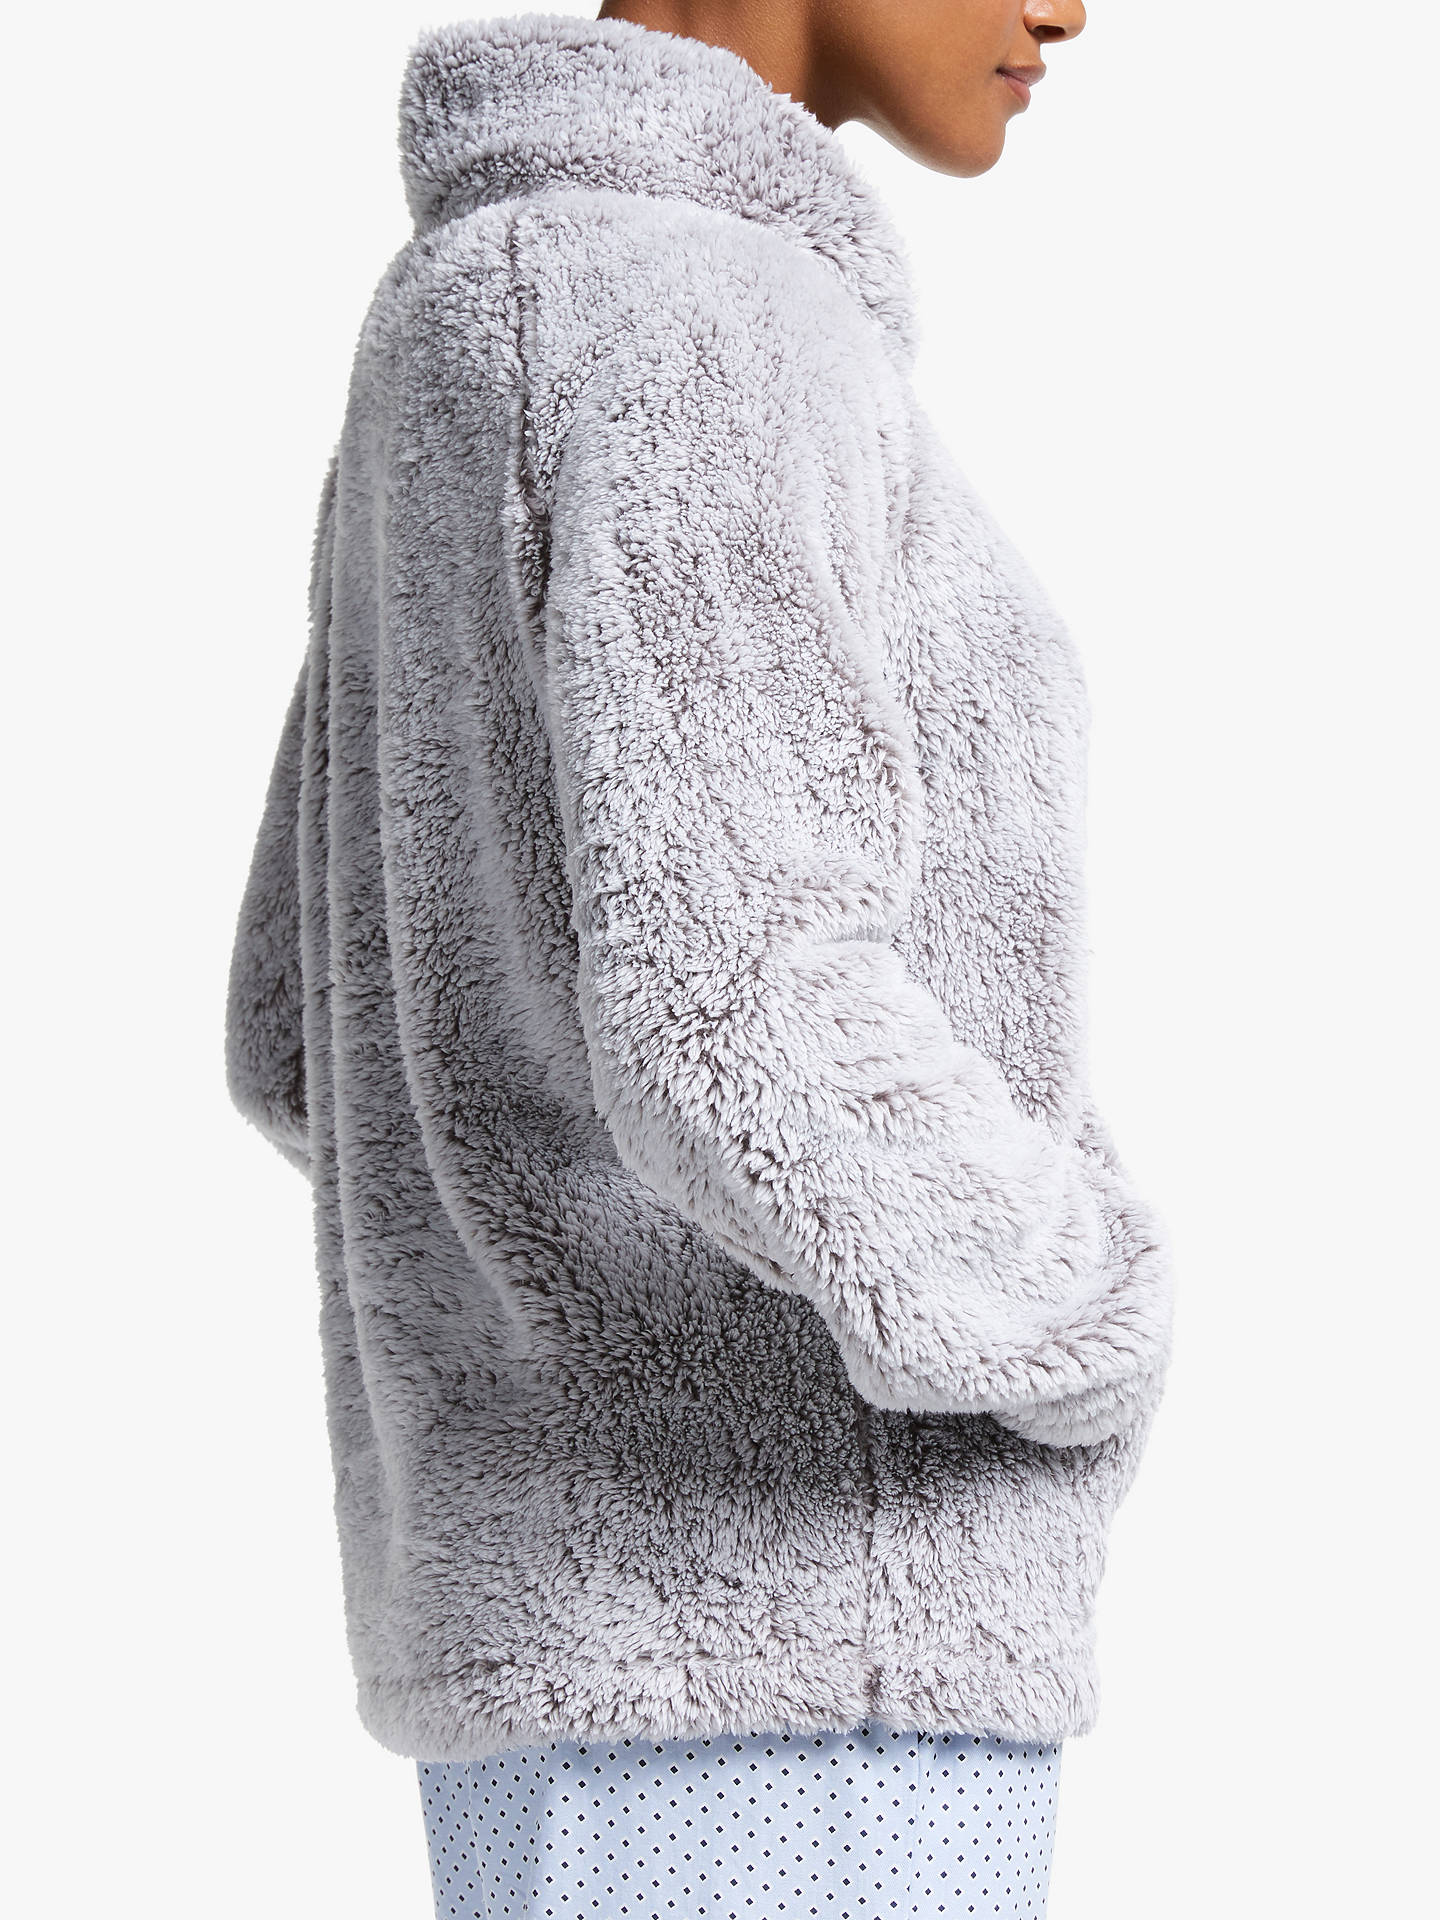 BuyJohn Lewis & Partners Hi-Pile Fleece Snuggle Top, Grey, S Online at johnlewis.com